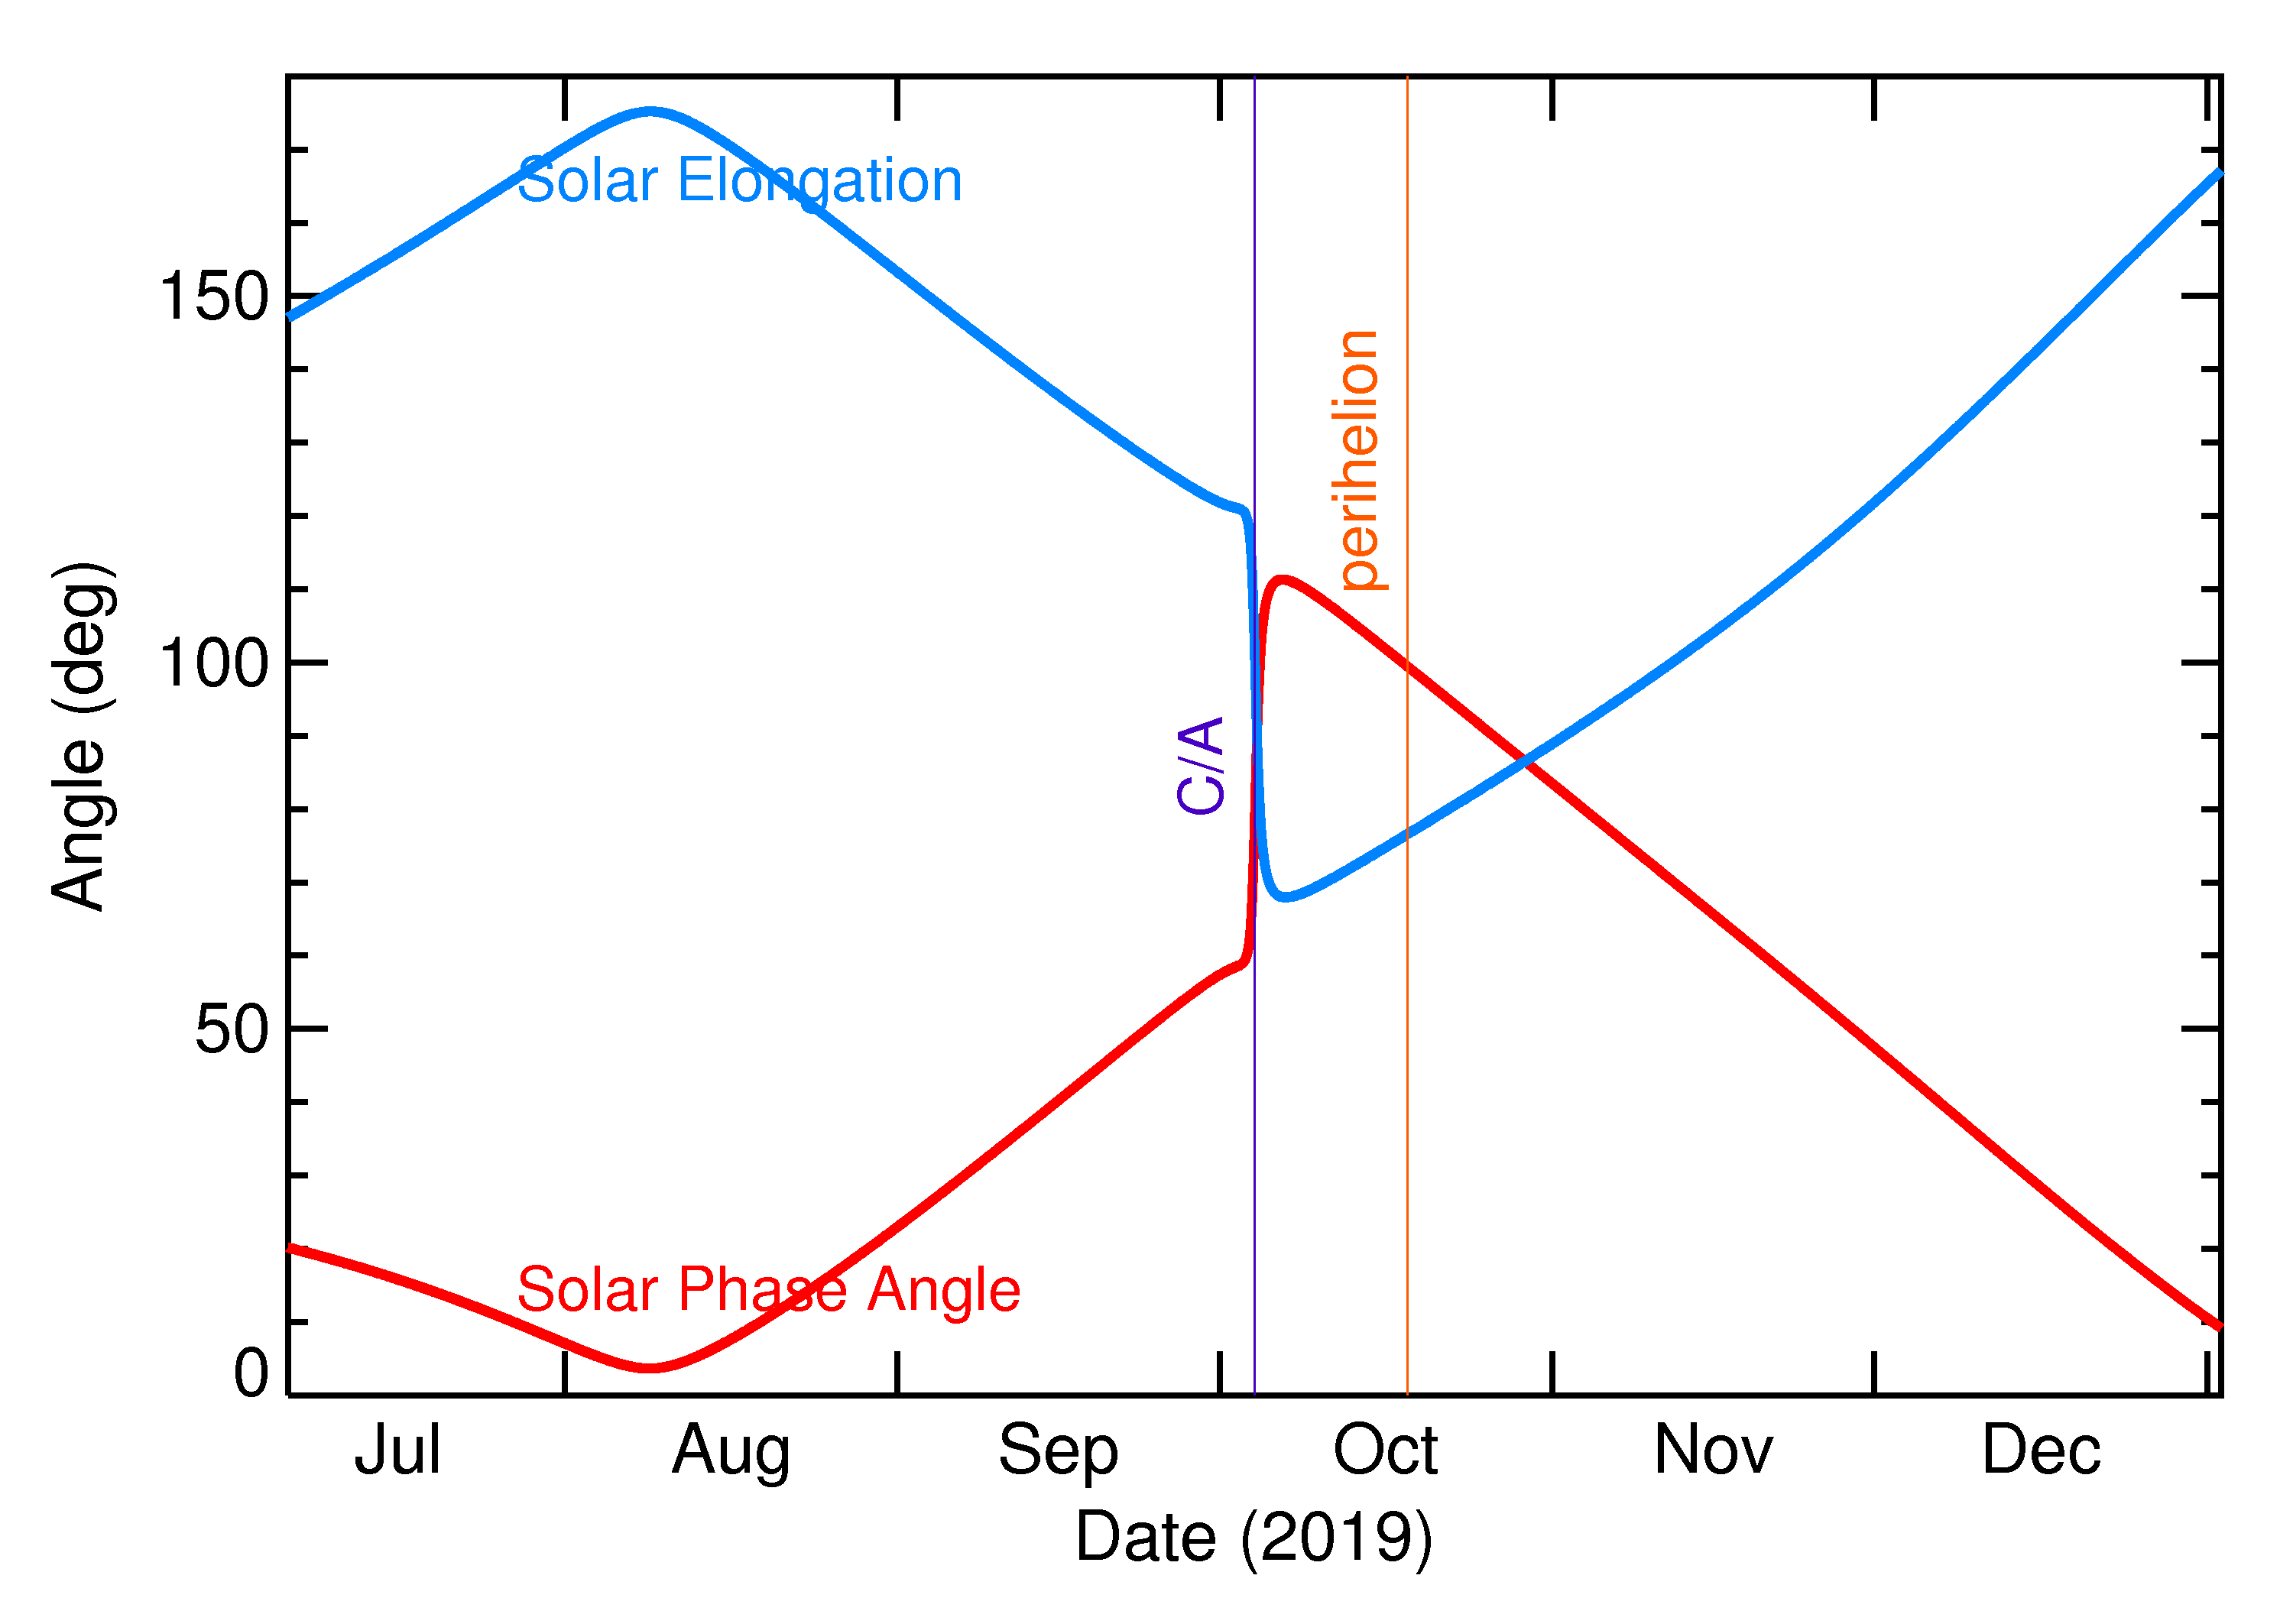 Solar Elongation and Solar Phase Angle of 2019 SP3 in the months around closest approach